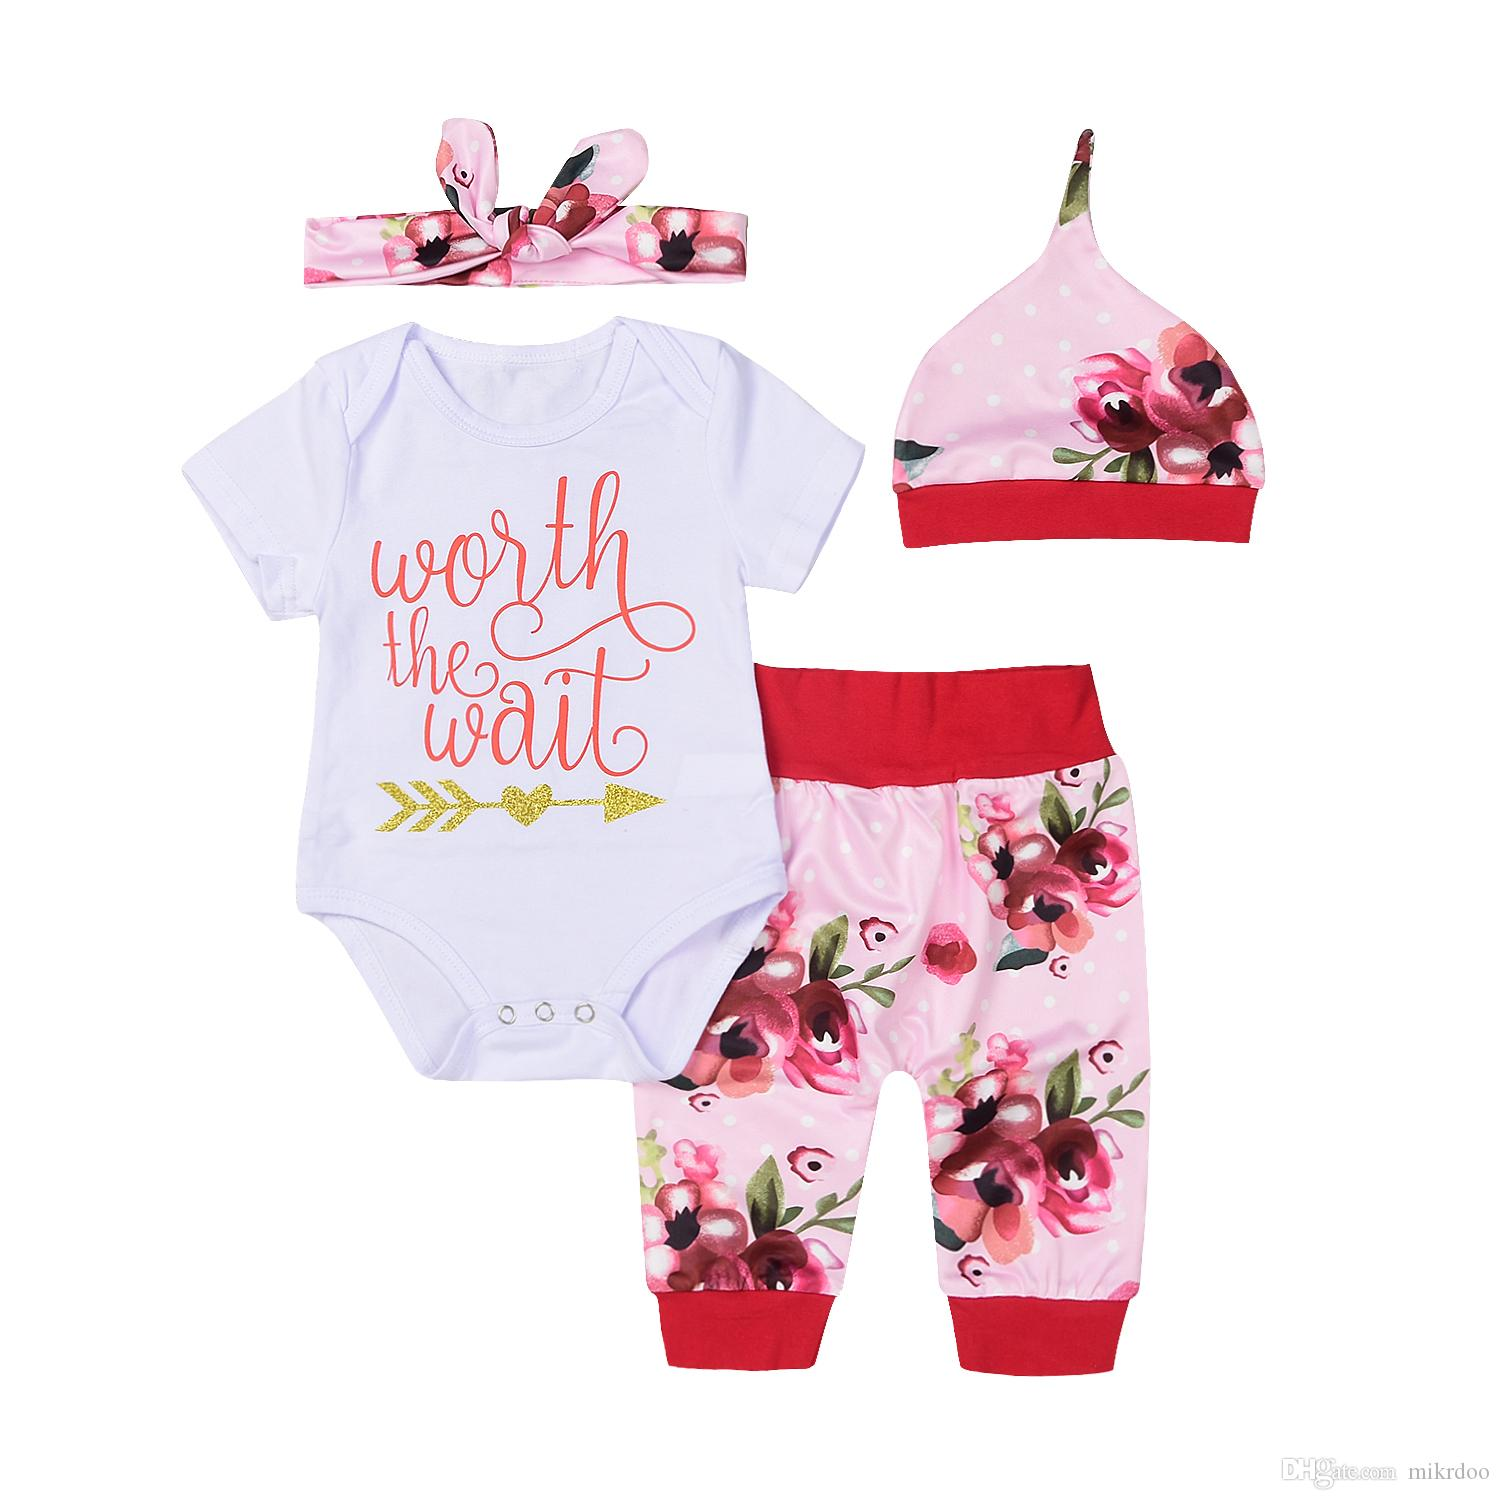 Mikrdoo Lovely Infant Baby Girls Clothes Worth The Wait Funny